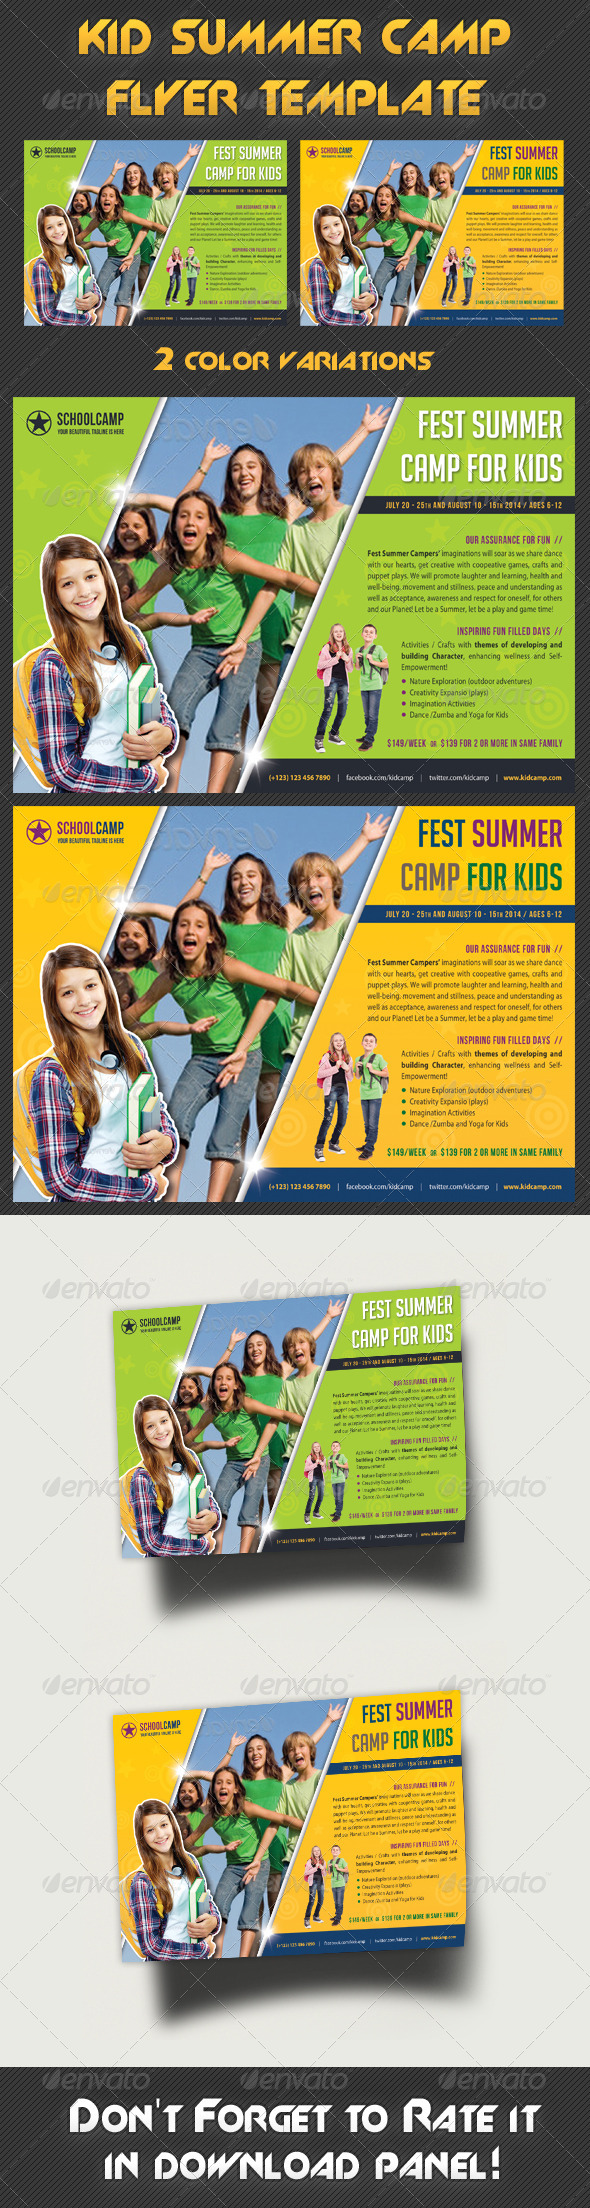 GraphicRiver Kids Summer Camp Flyer Template 8037018